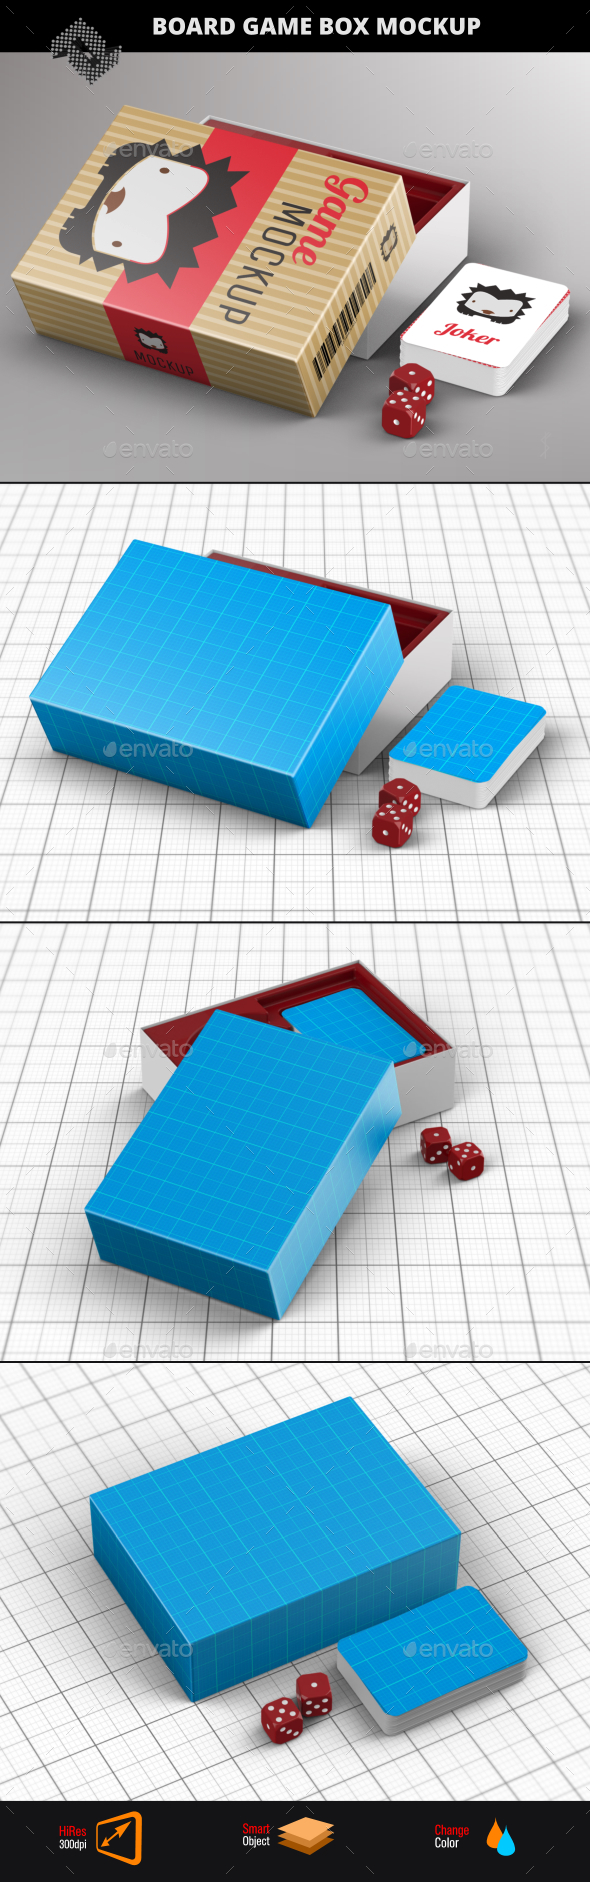 Board Game Box Mockup